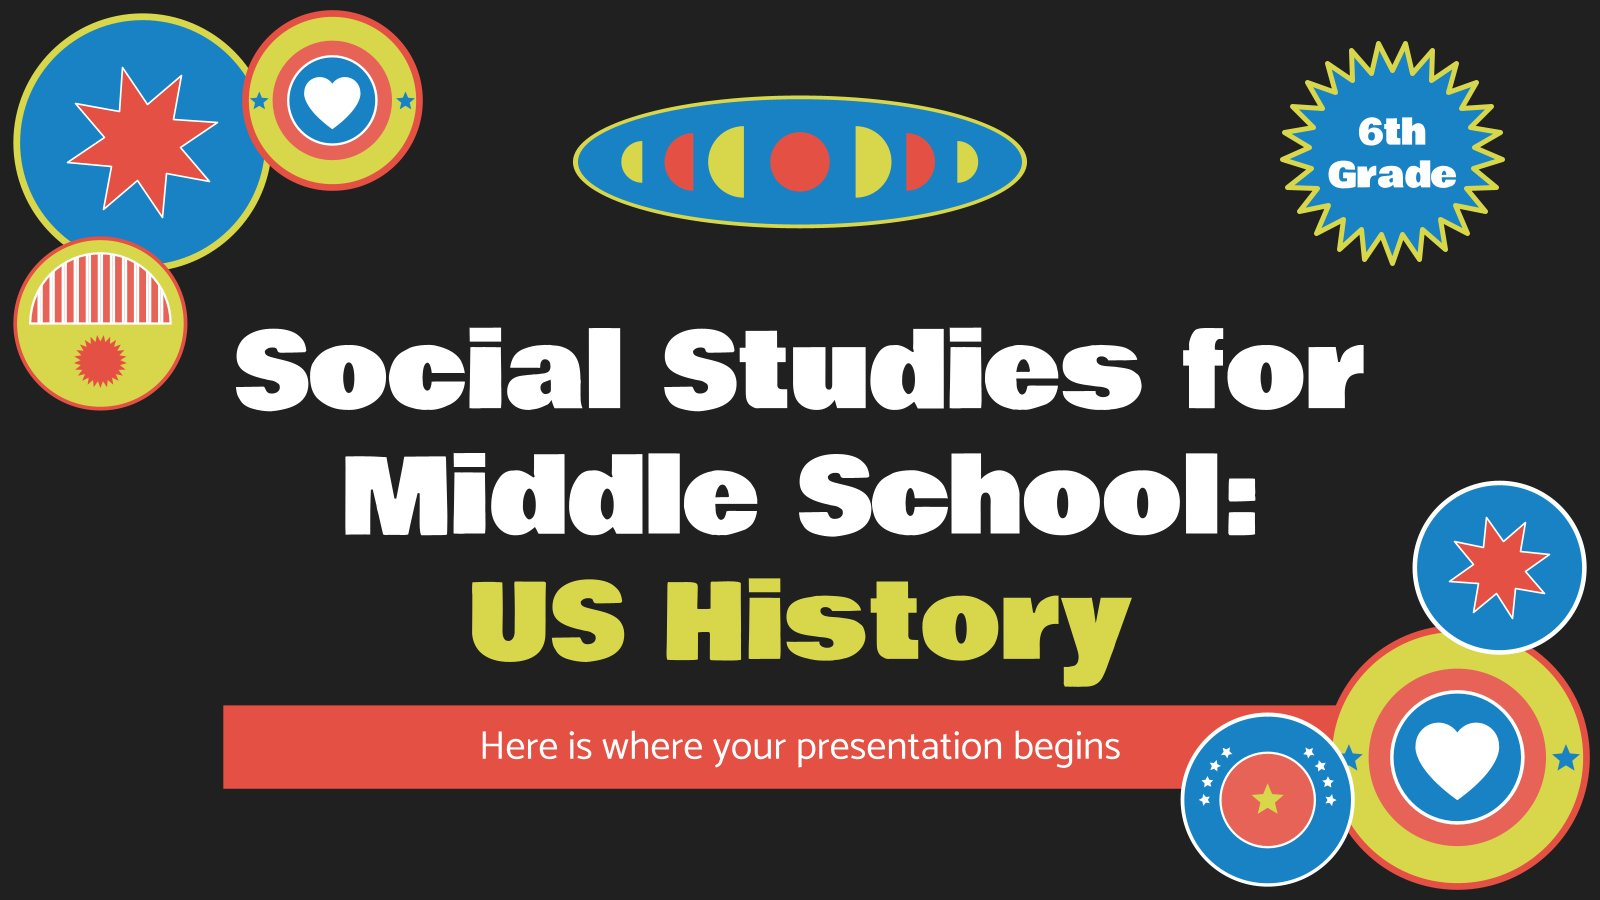 Social Studies for Middle School - 6th Grade: US History presentation template